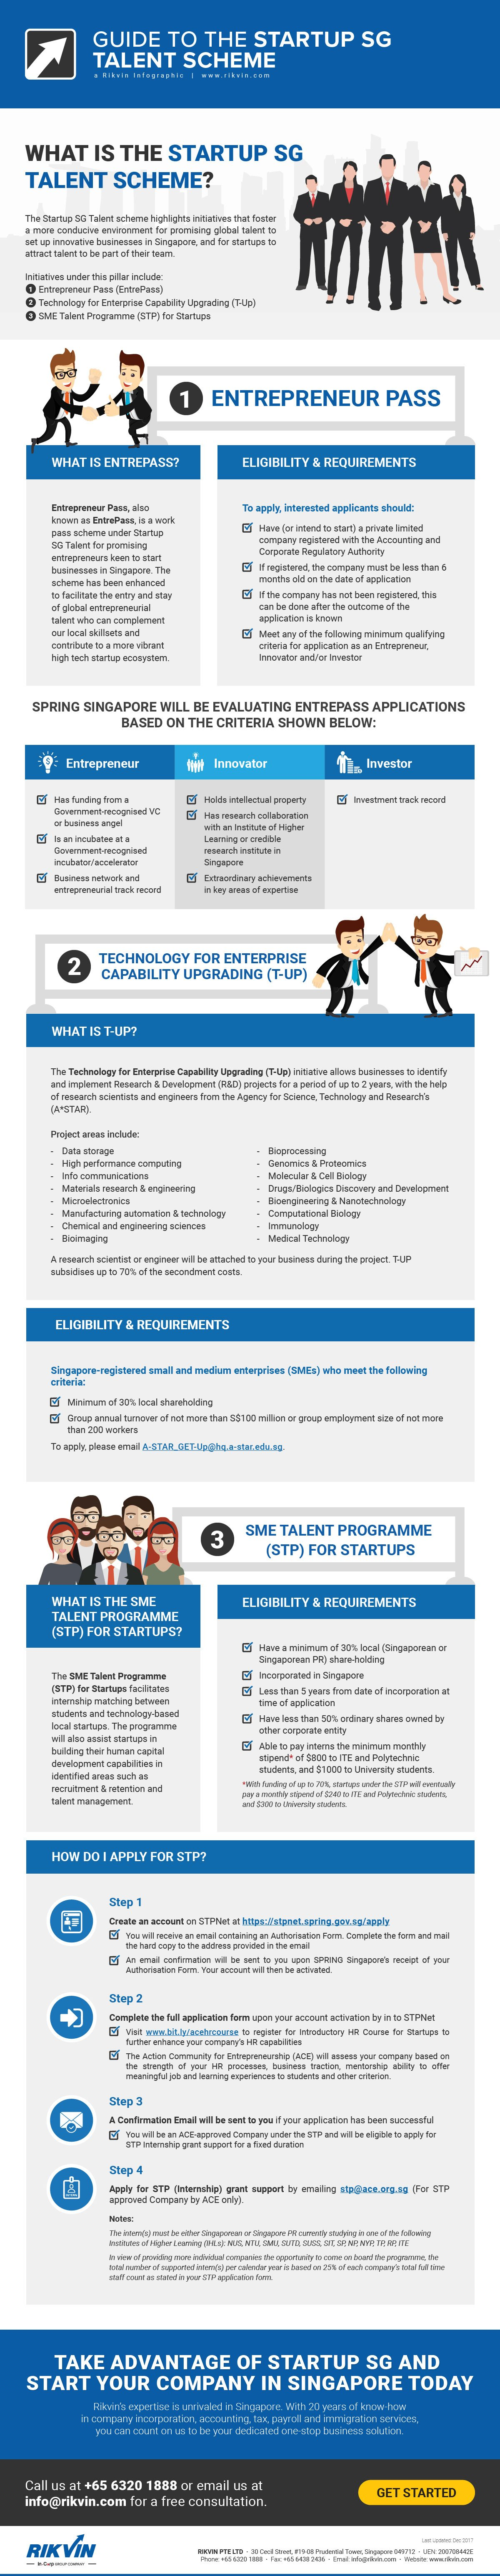 guide to the startup sg talent scheme